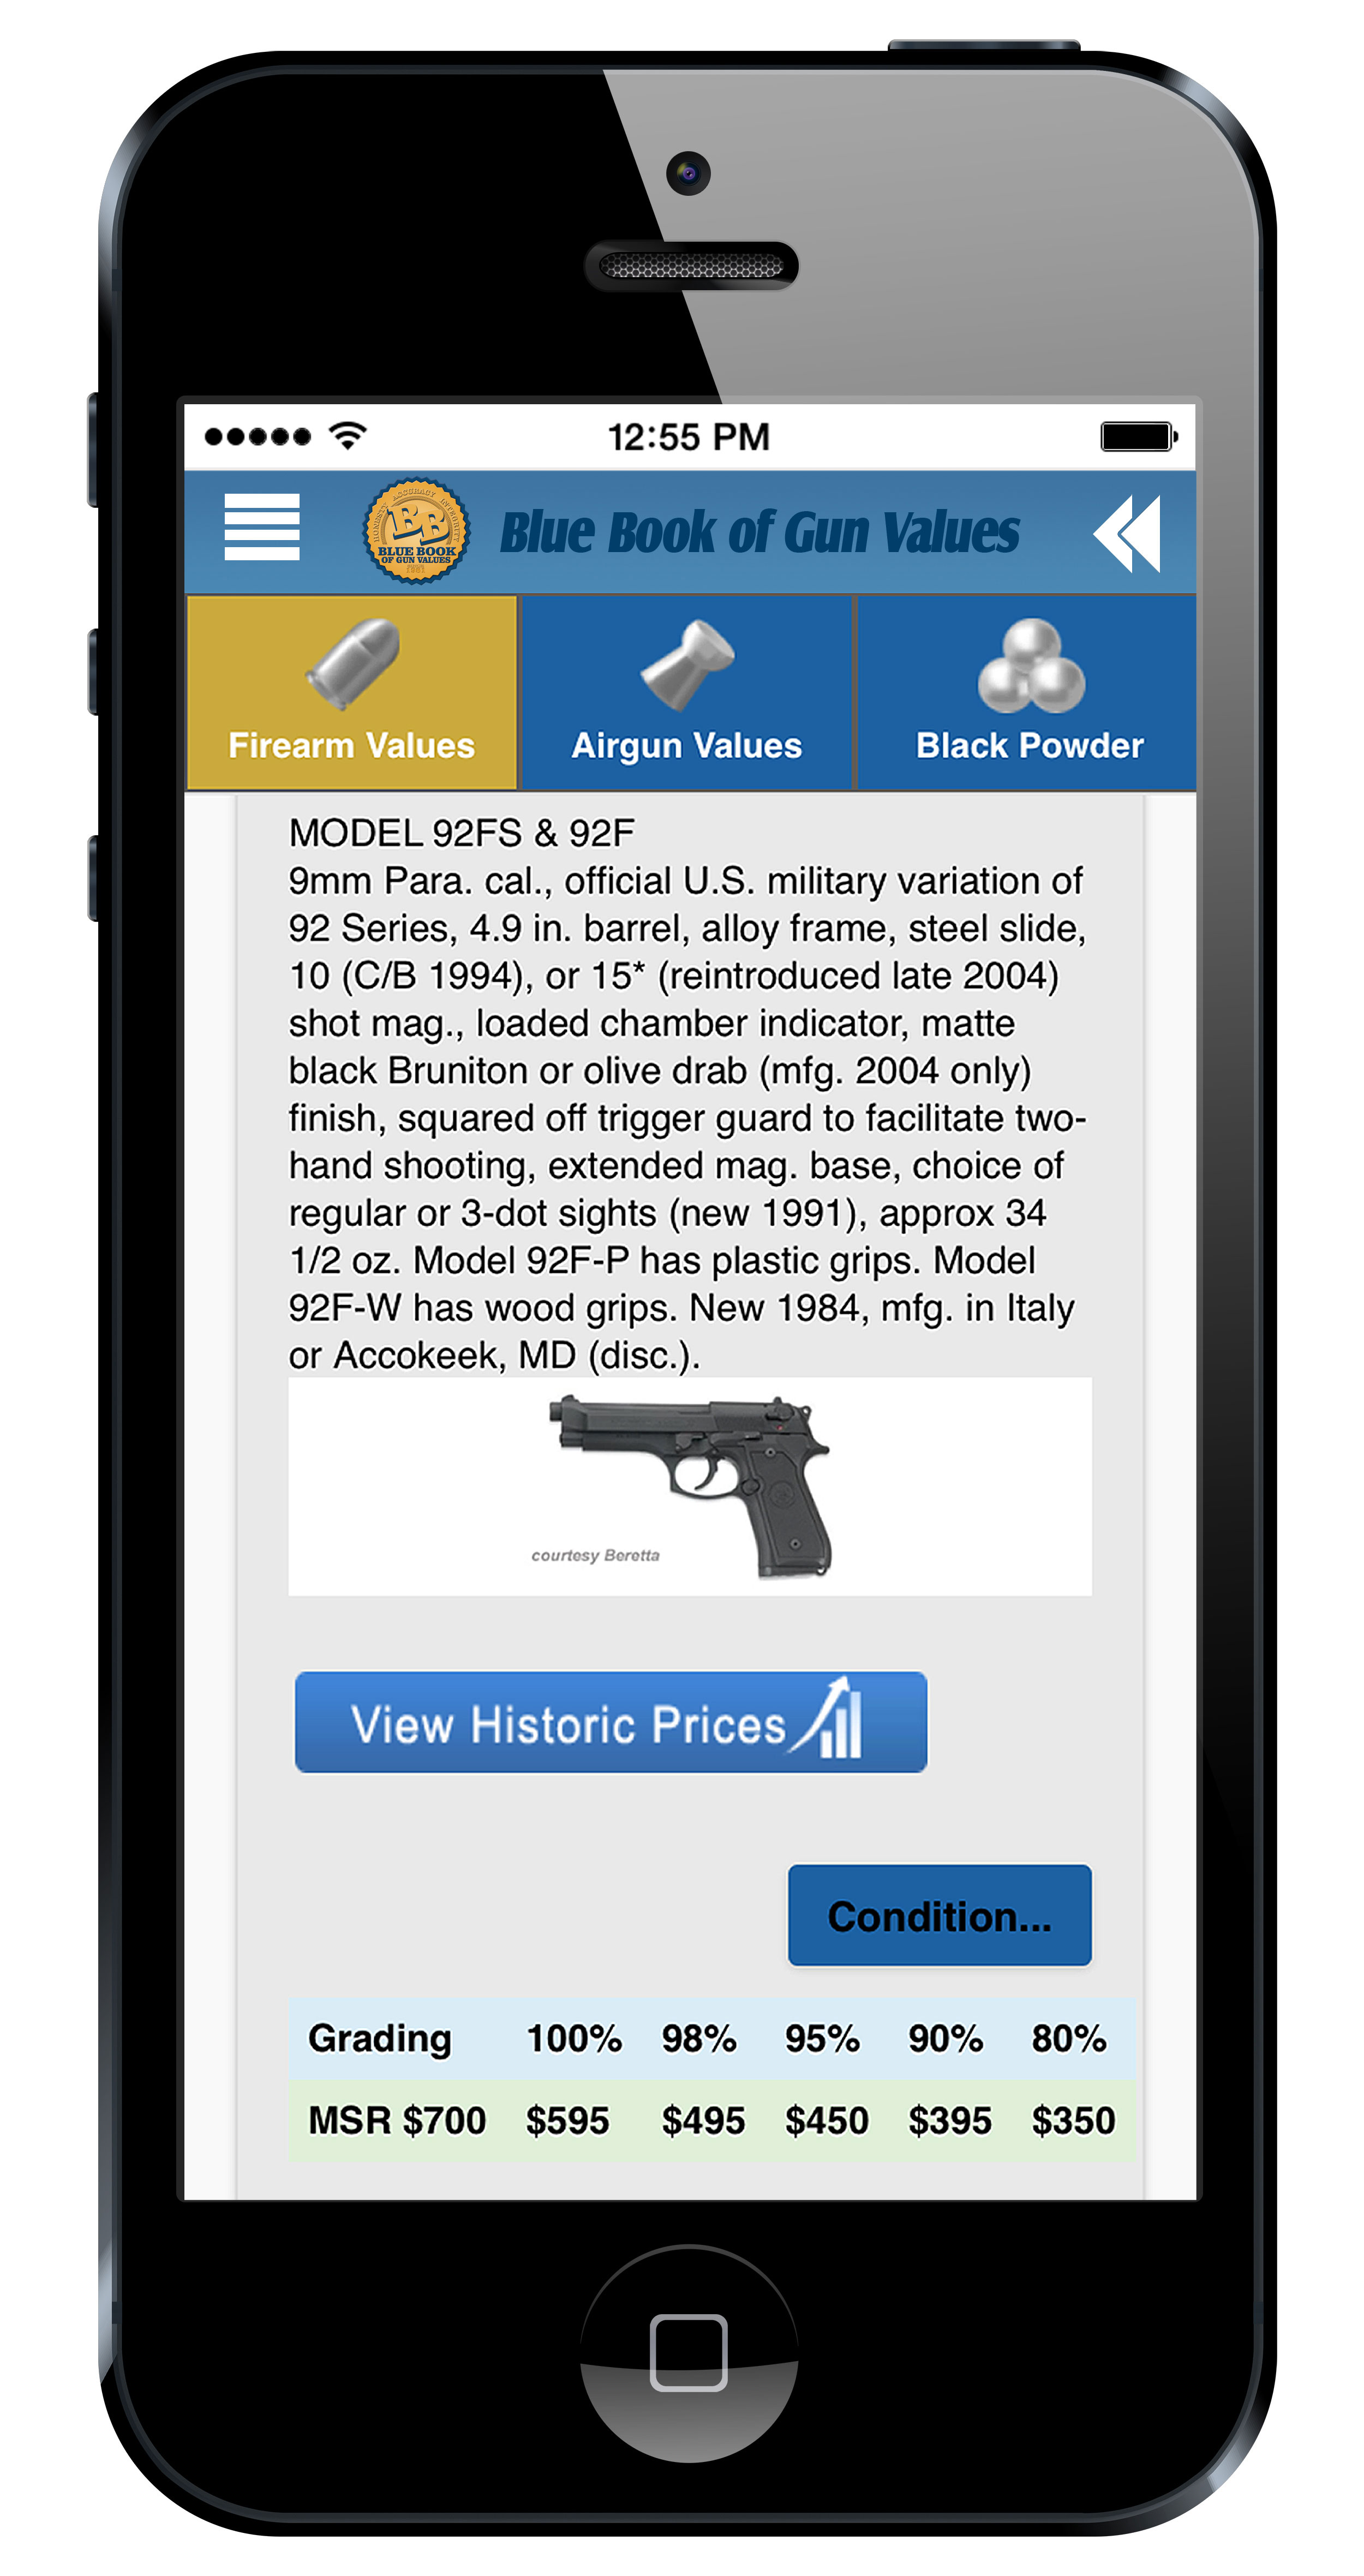 Blue Book of Gun Values App